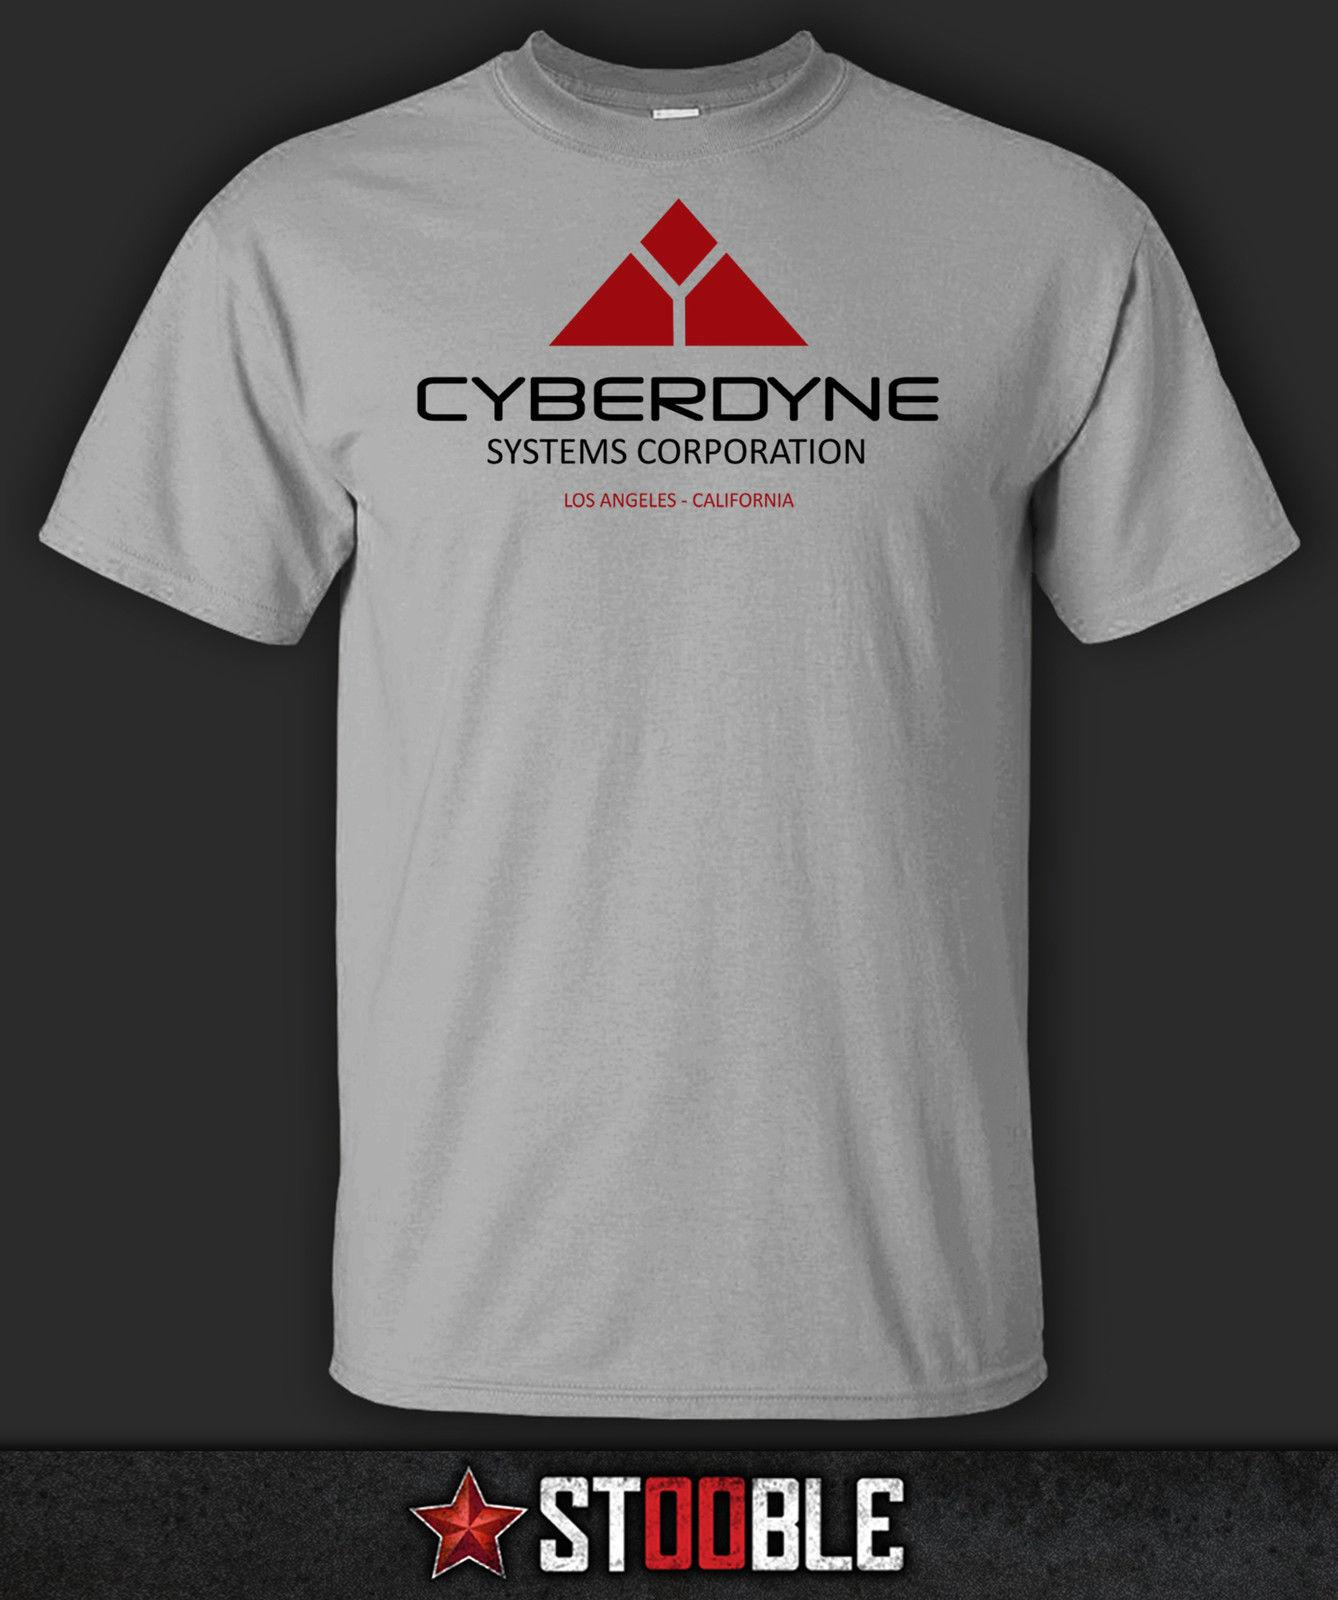 Cyberdyne Systems T-Shirt - Directo desde Stockist